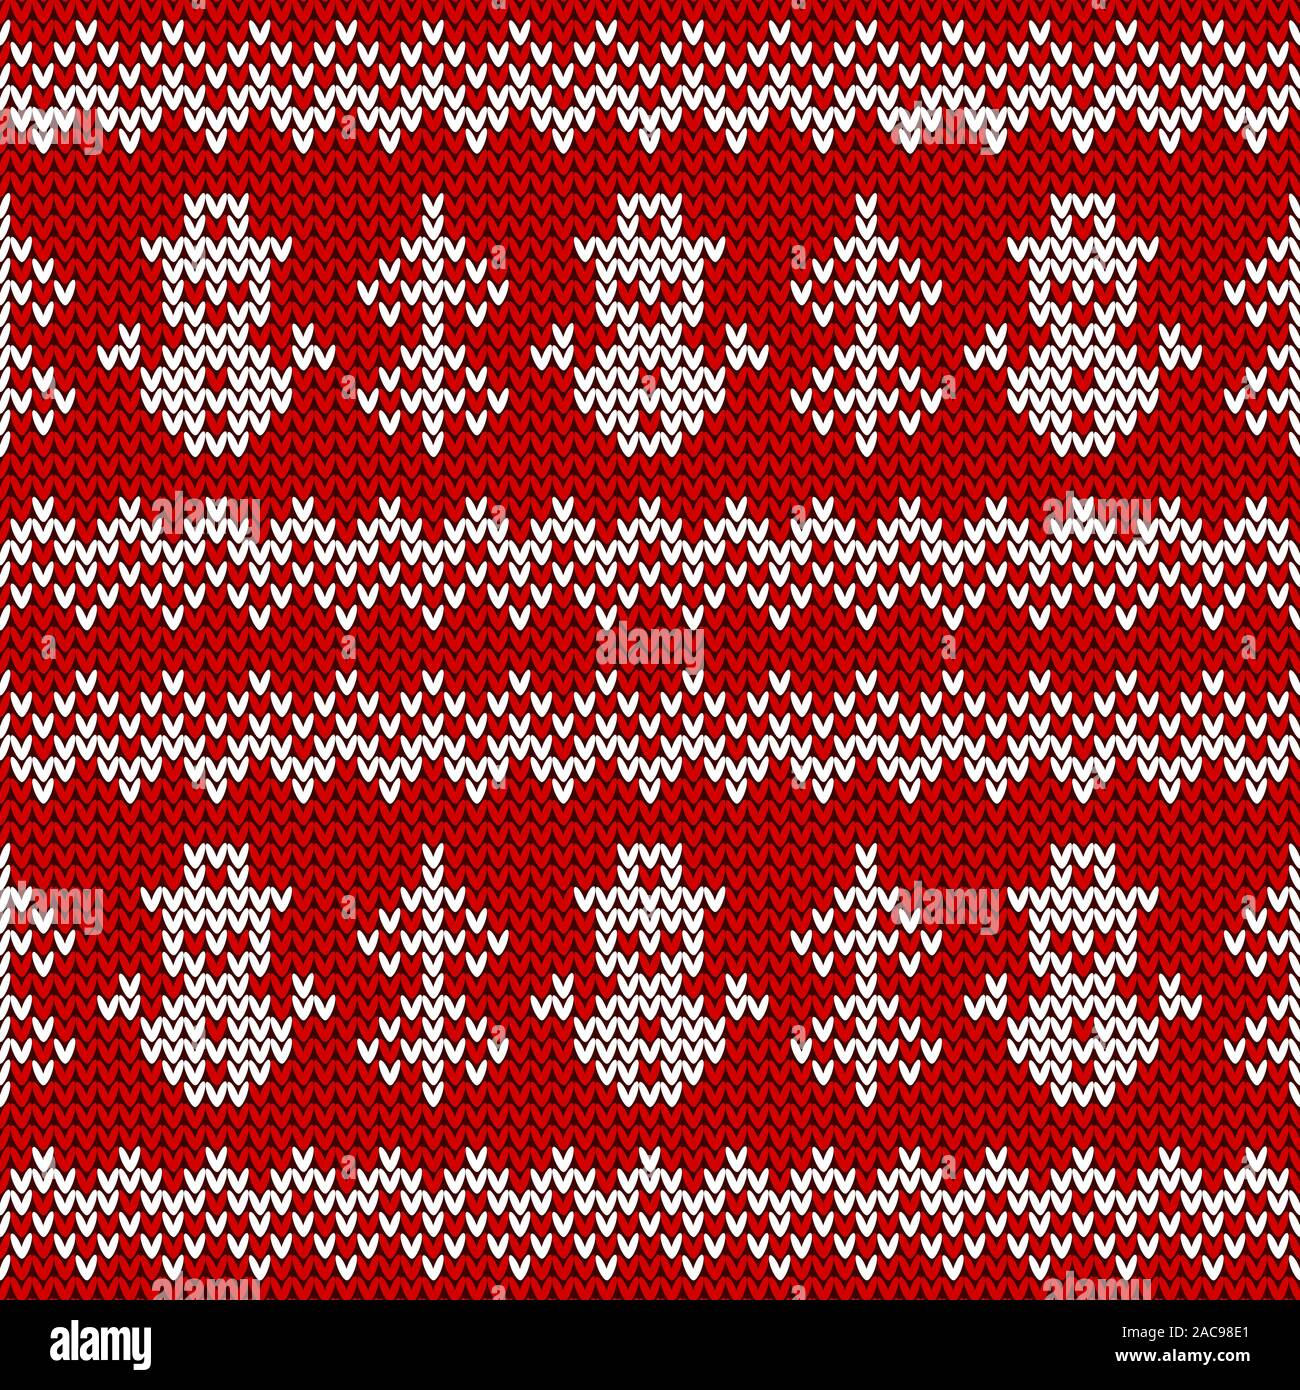 Knitted seamless pattern with snowmen and Christmas trees. Vector background. Red and white sweater ornament for winter holidays design. Stock Vector